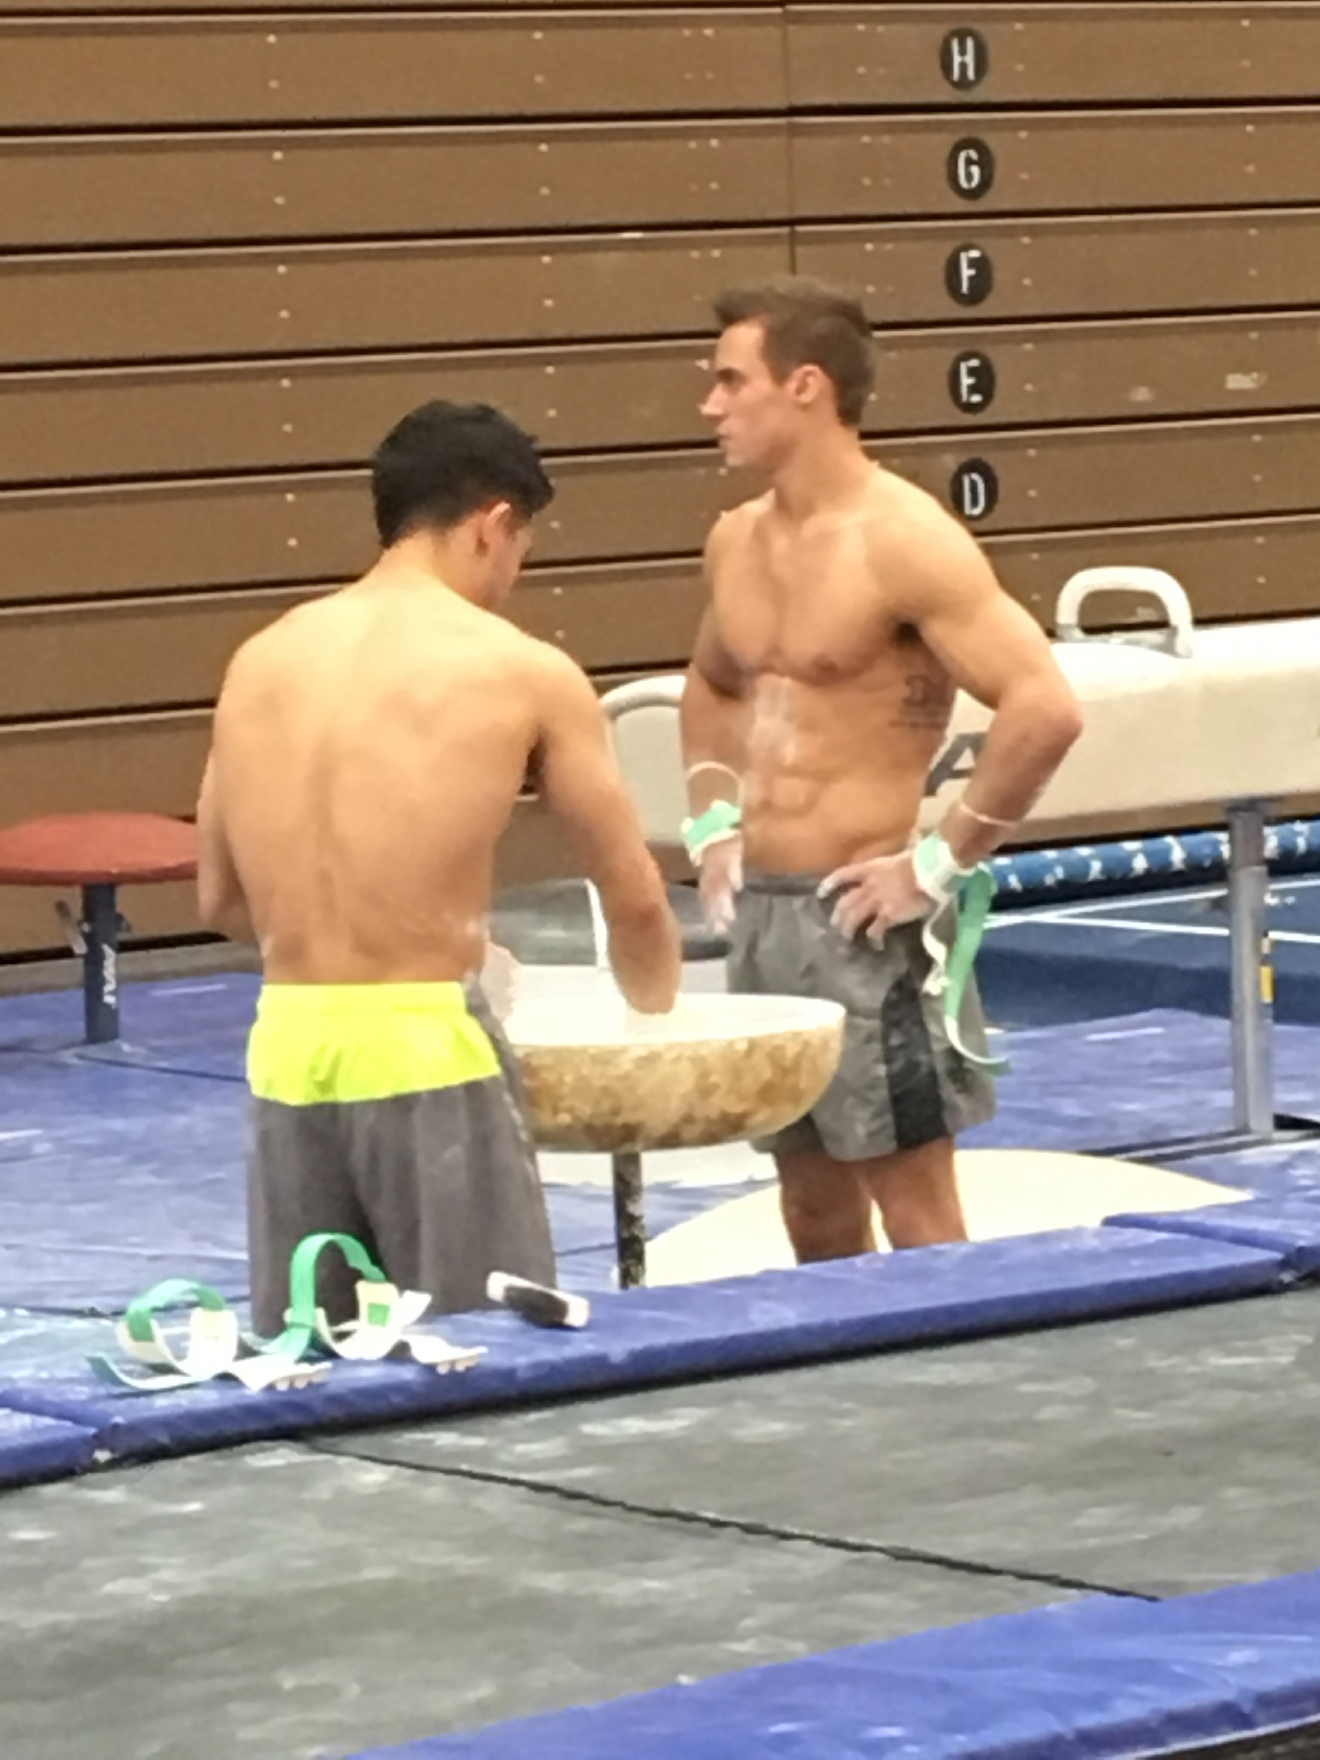 SamMikulak (right) during training at the Olympic Training Center in Colorado Springs, Colorado speaking with a USA Gymnastics teammate.  Photo Credit: Sadie Hughes.